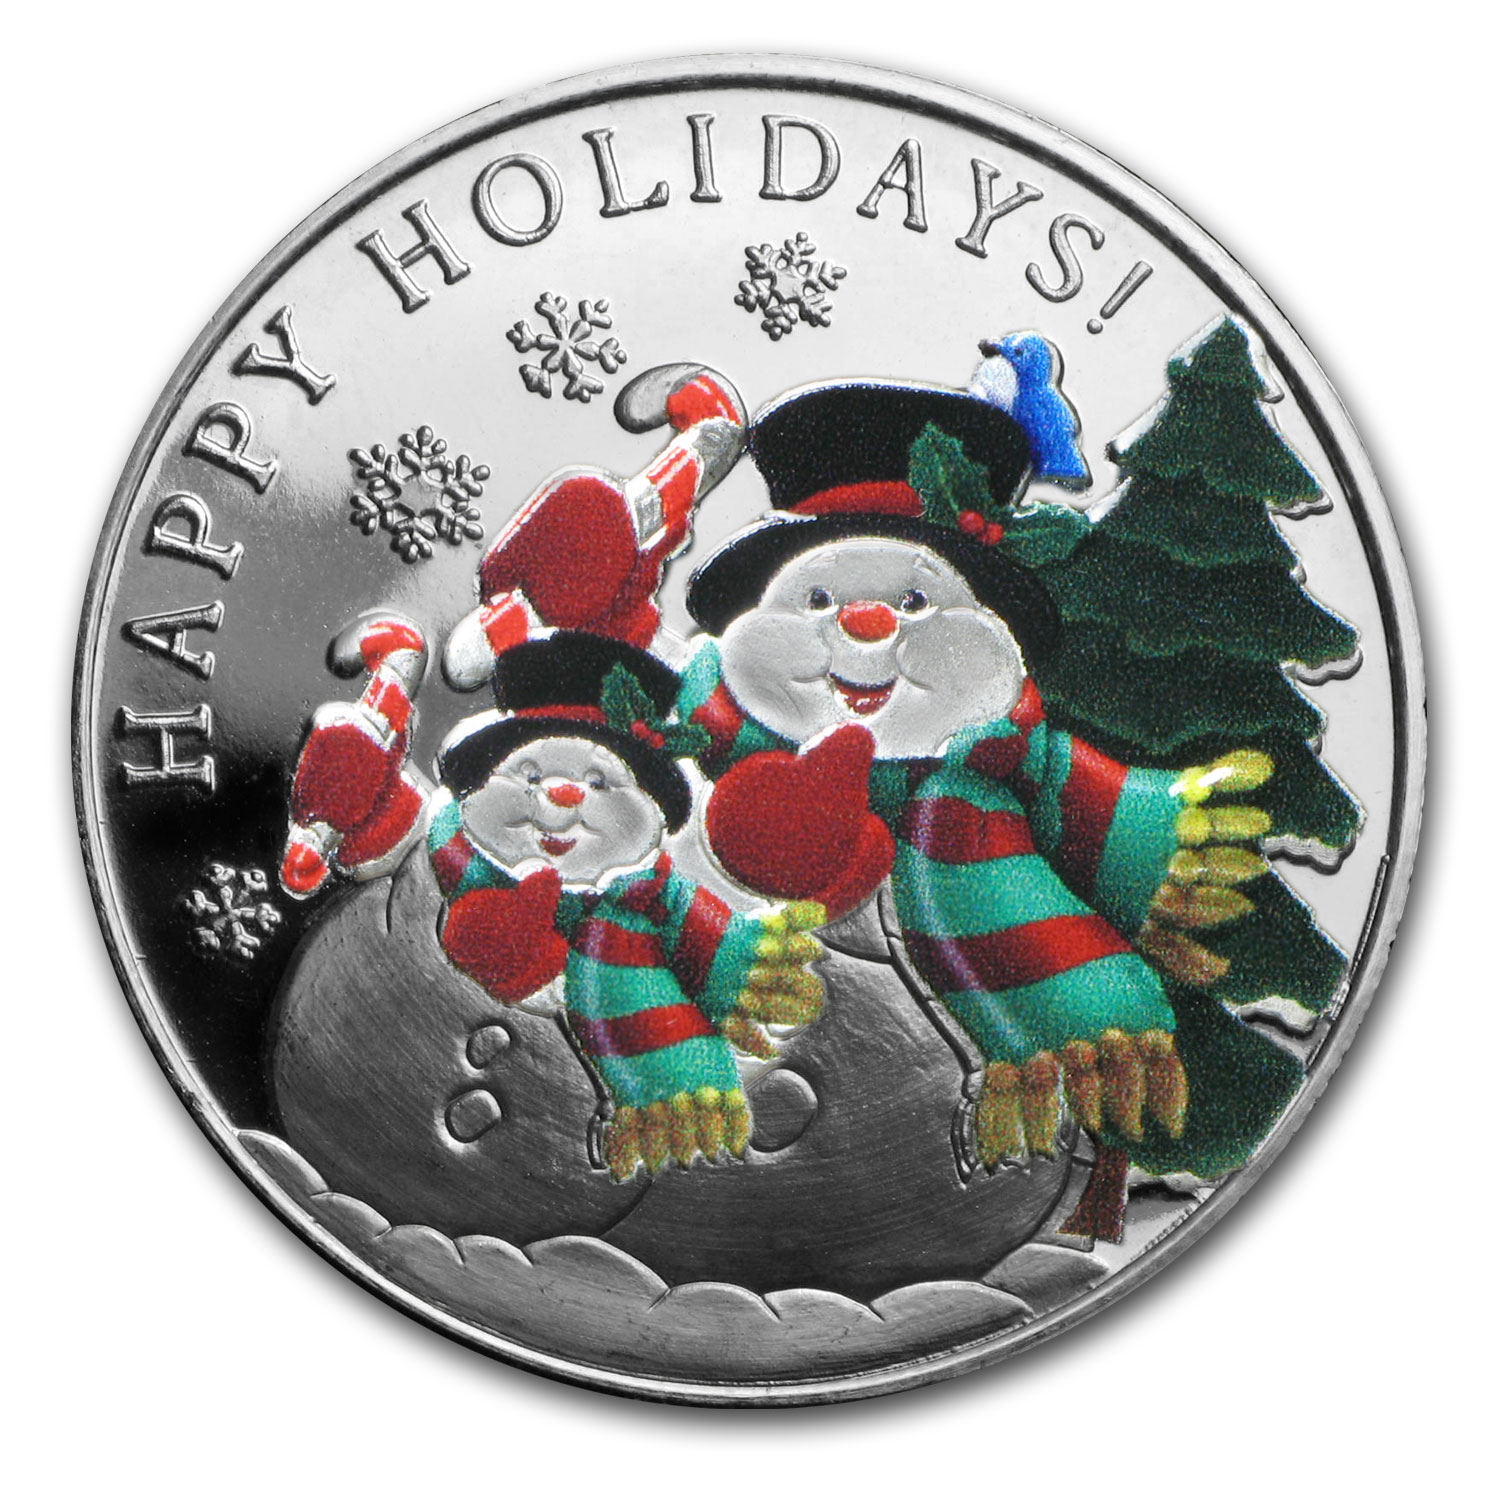 1 oz Silver Round - Colorized Snowman